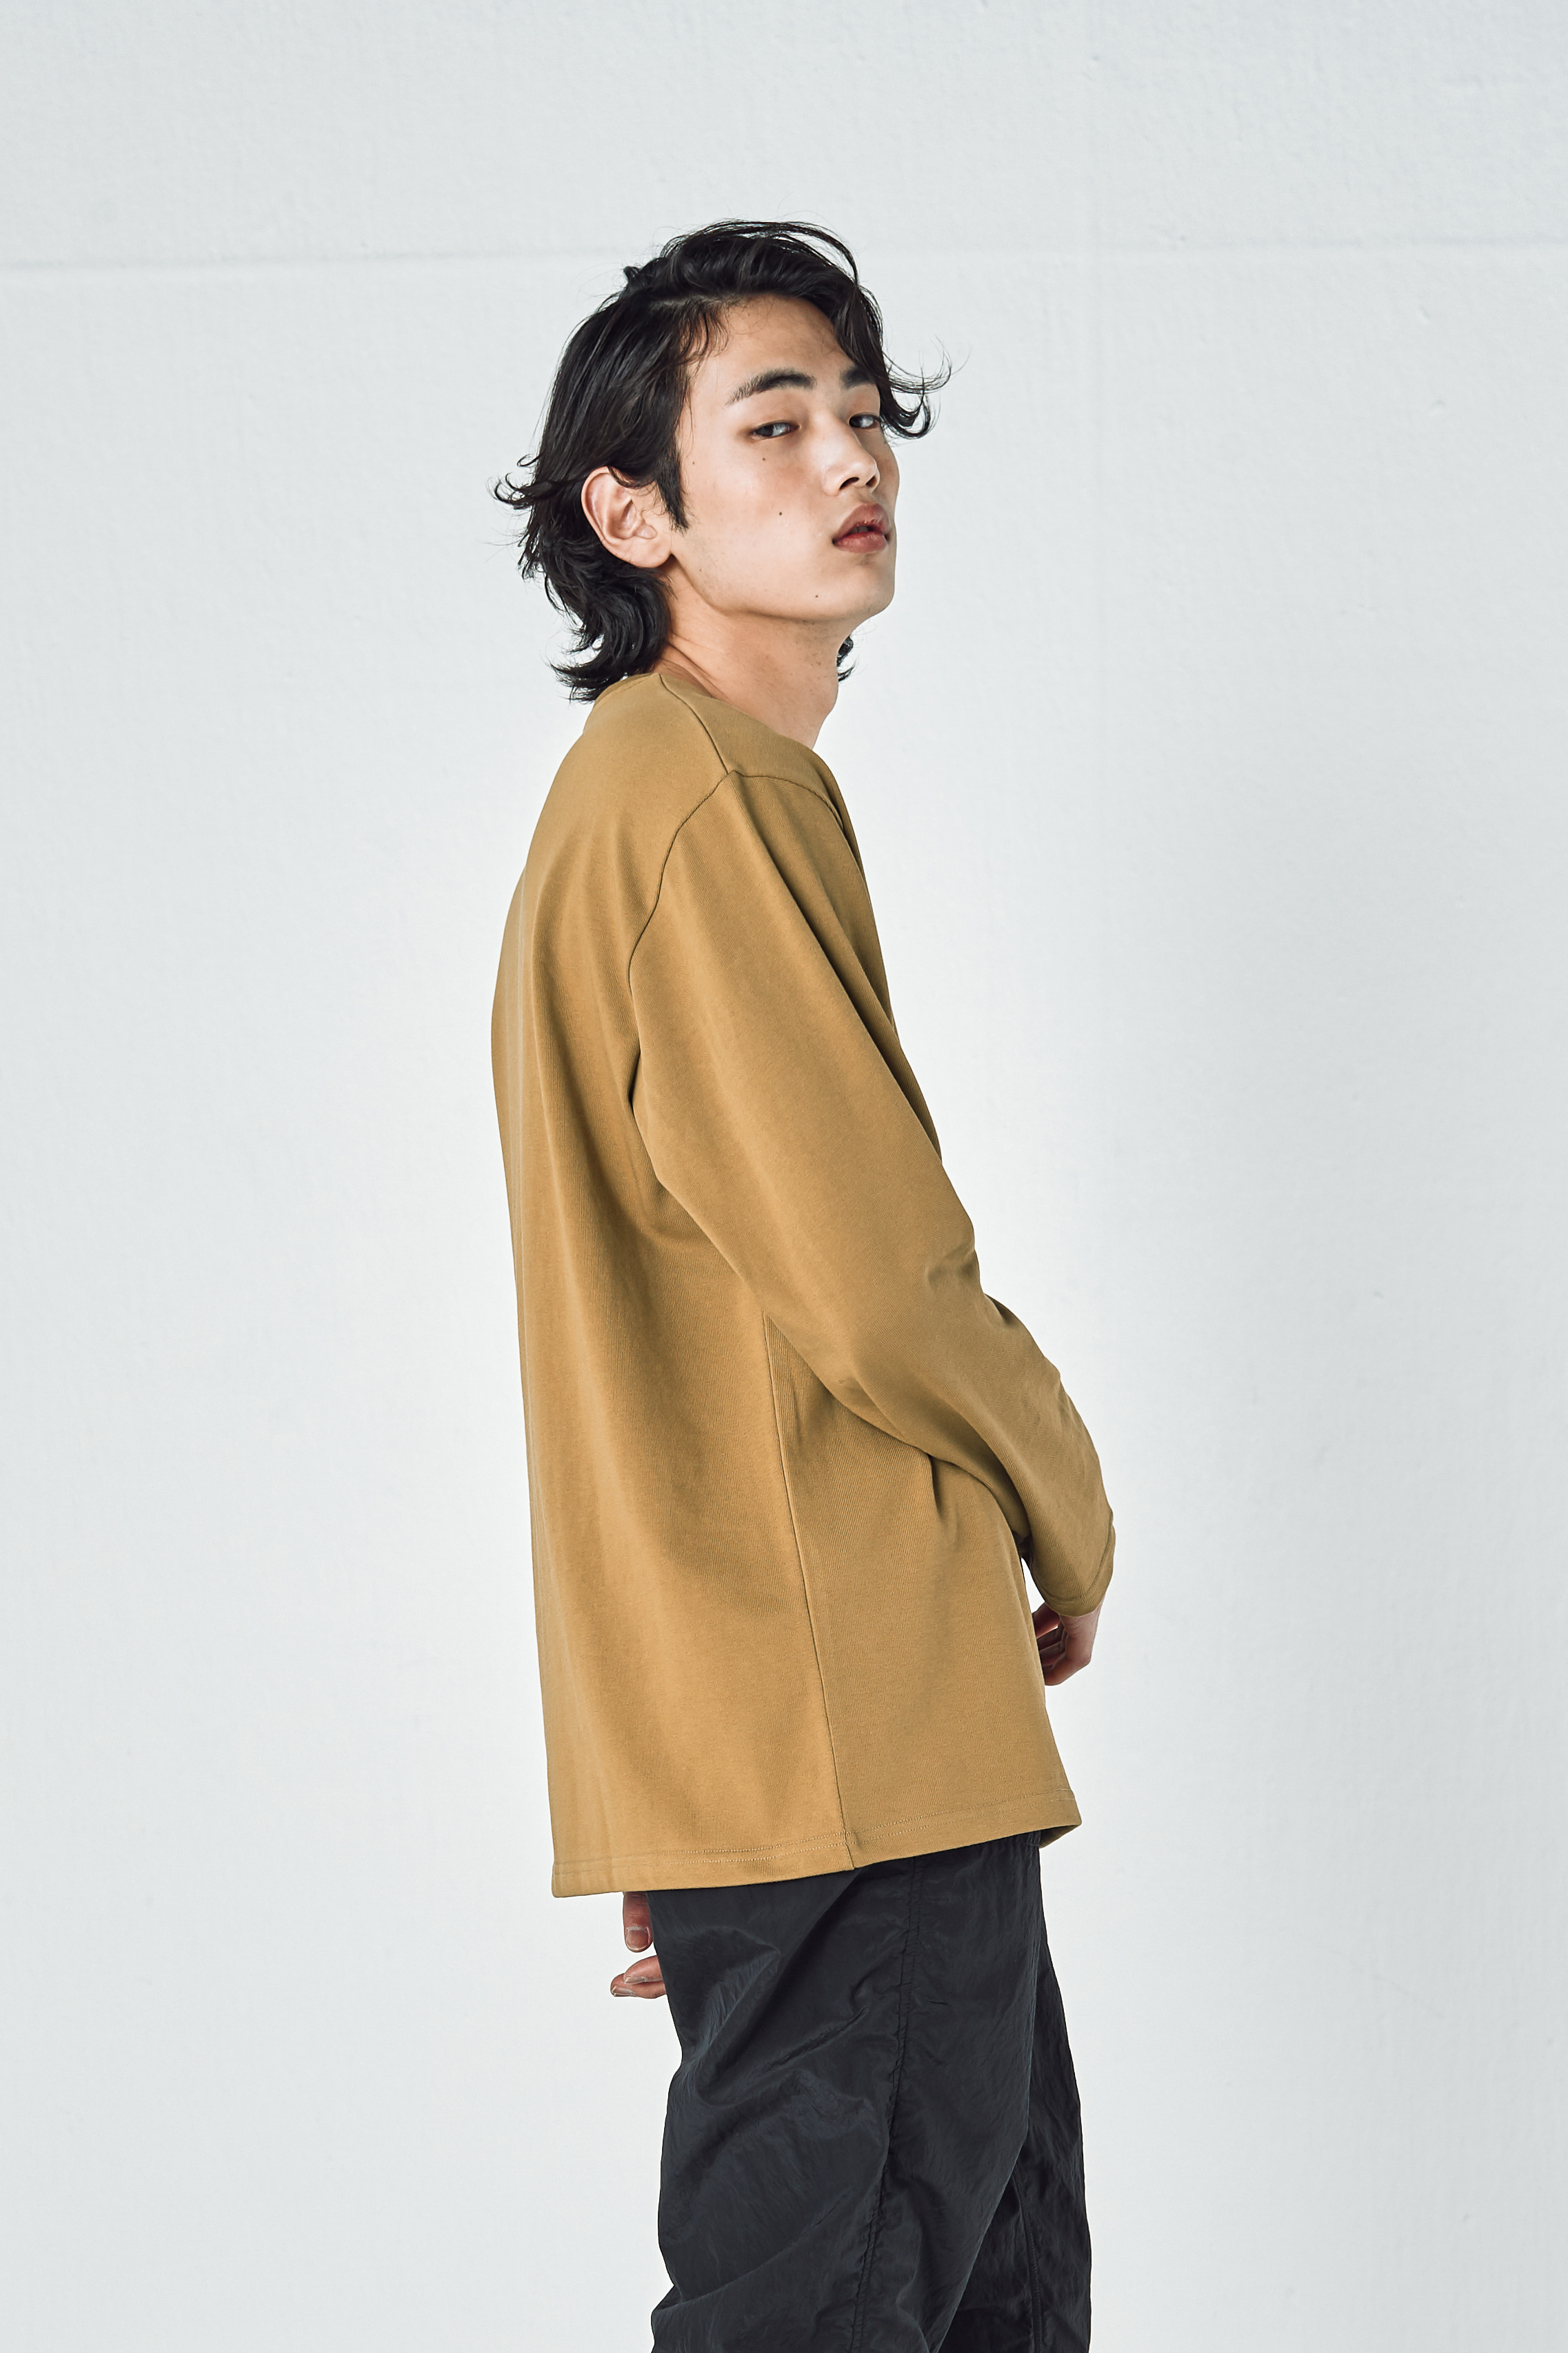 247 MINIMAL LONG SLEEVES (YELLOW KHAKI)